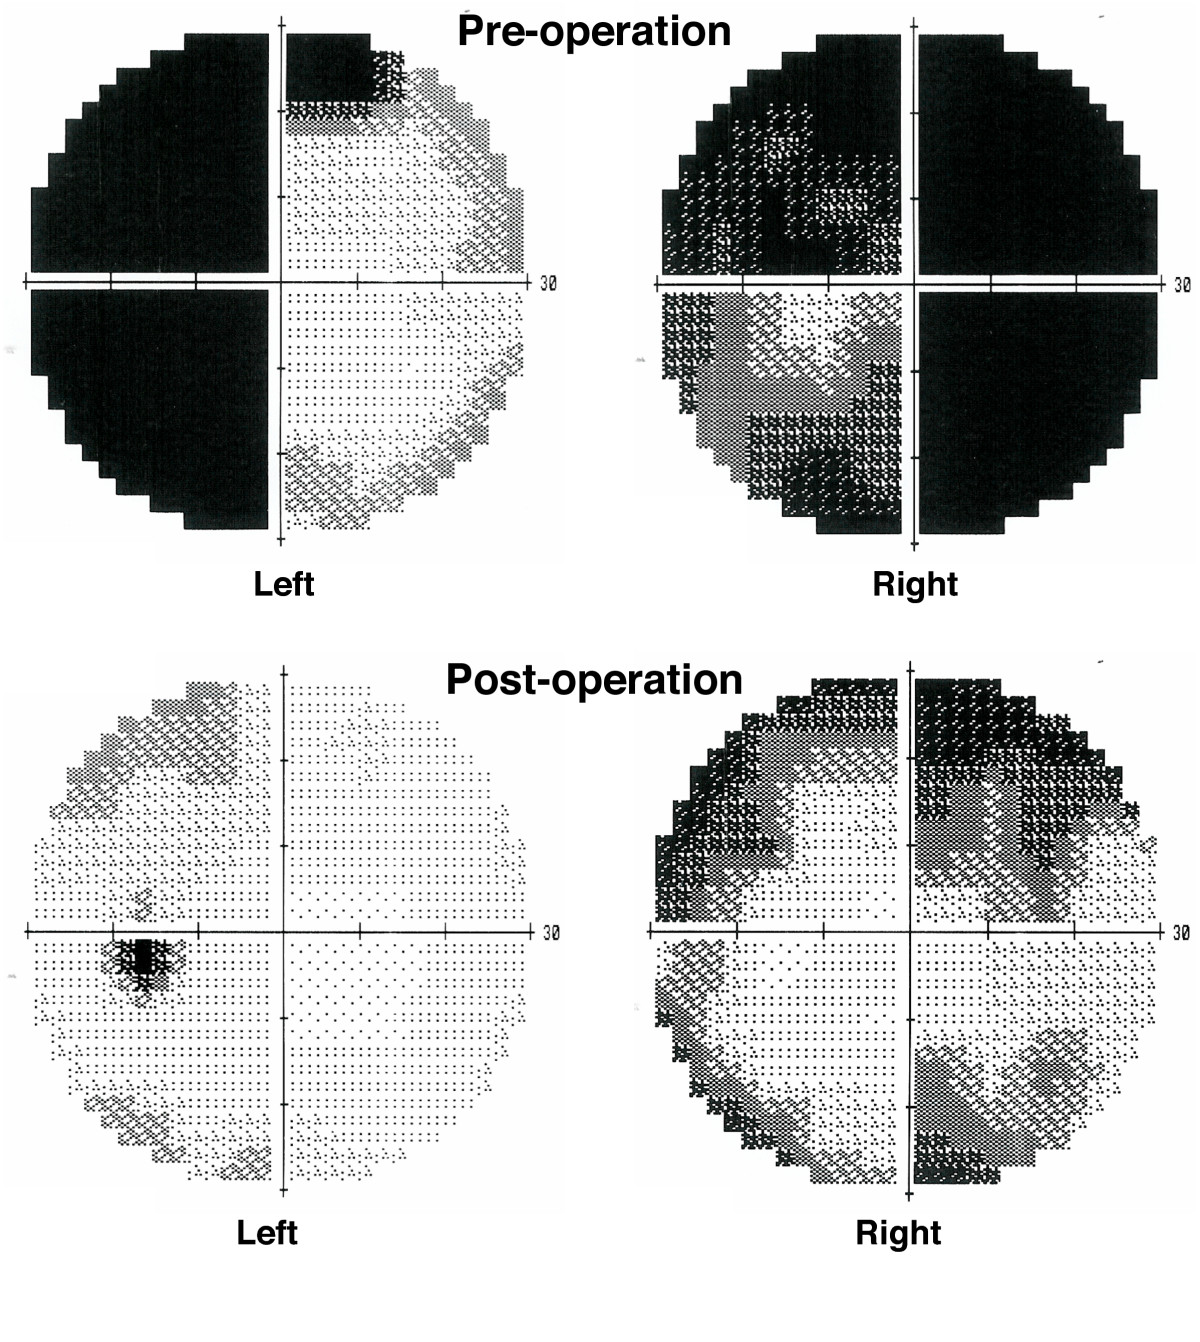 http://static-content.springer.com/image/art%3A10.1186%2F1752-1947-1-74/MediaObjects/13256_2007_Article_74_Fig3_HTML.jpg